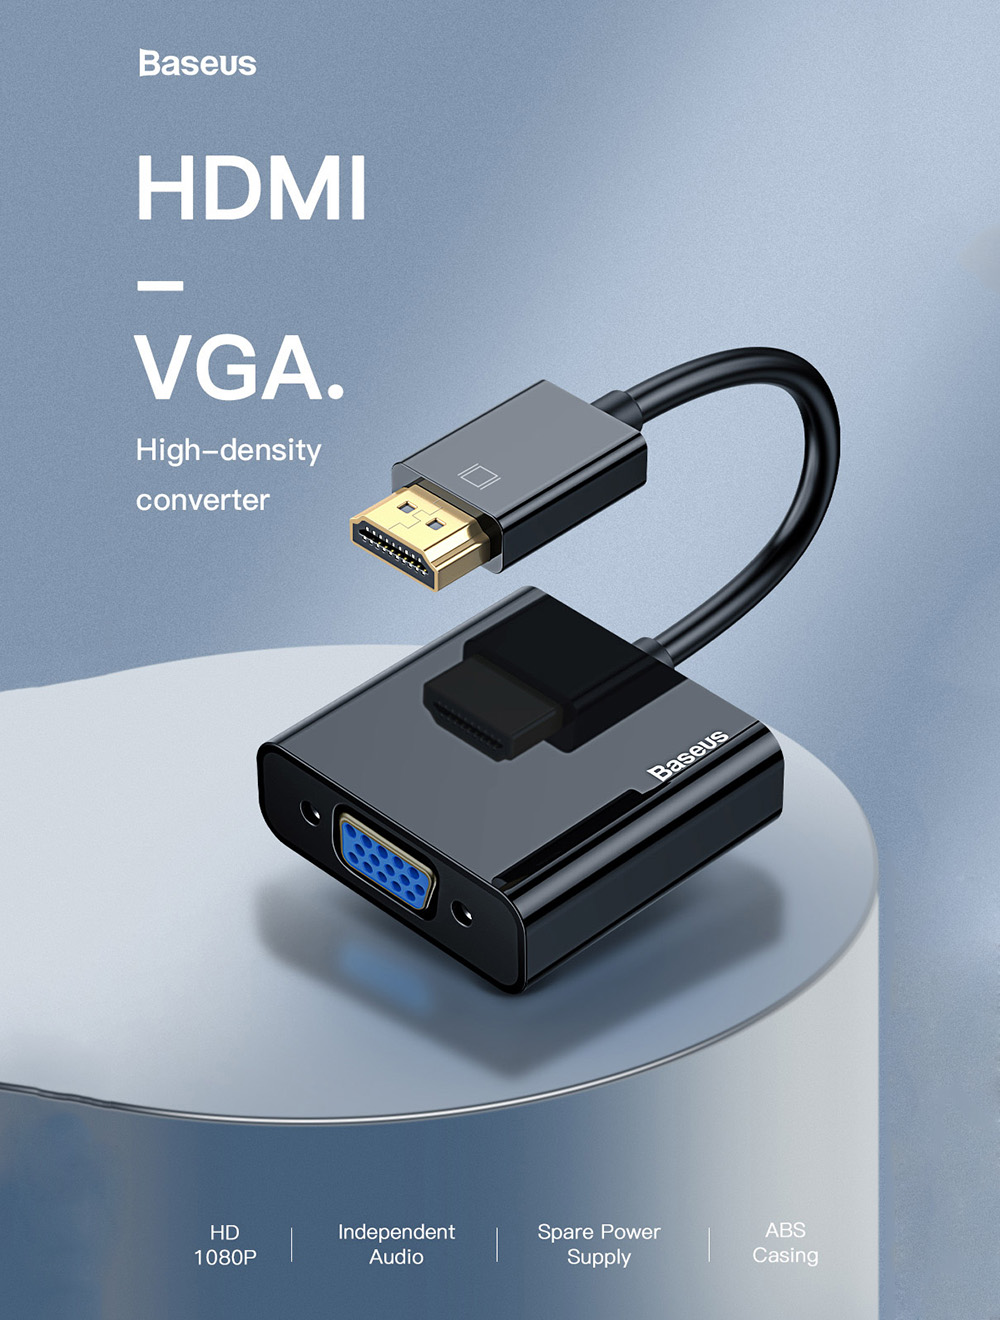 Baseus HDMI To VGA Cable HDMI VGA Adapter For Laptop PS4 TV- Black